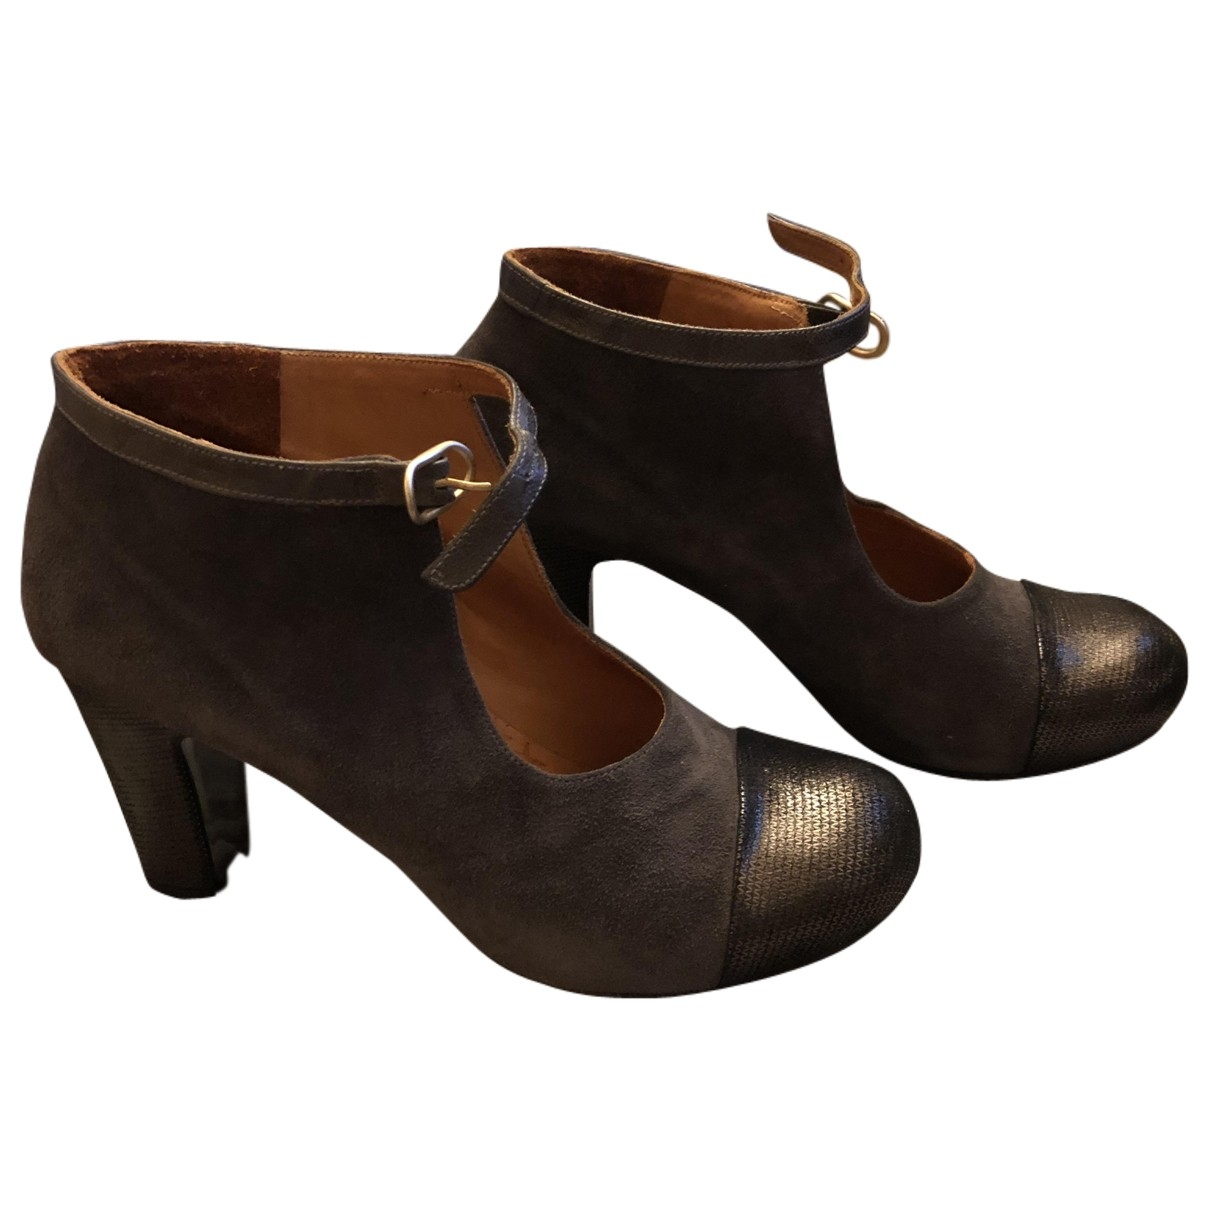 Chie Mihara \N Anthracite Leather Heels for Women 38 EU